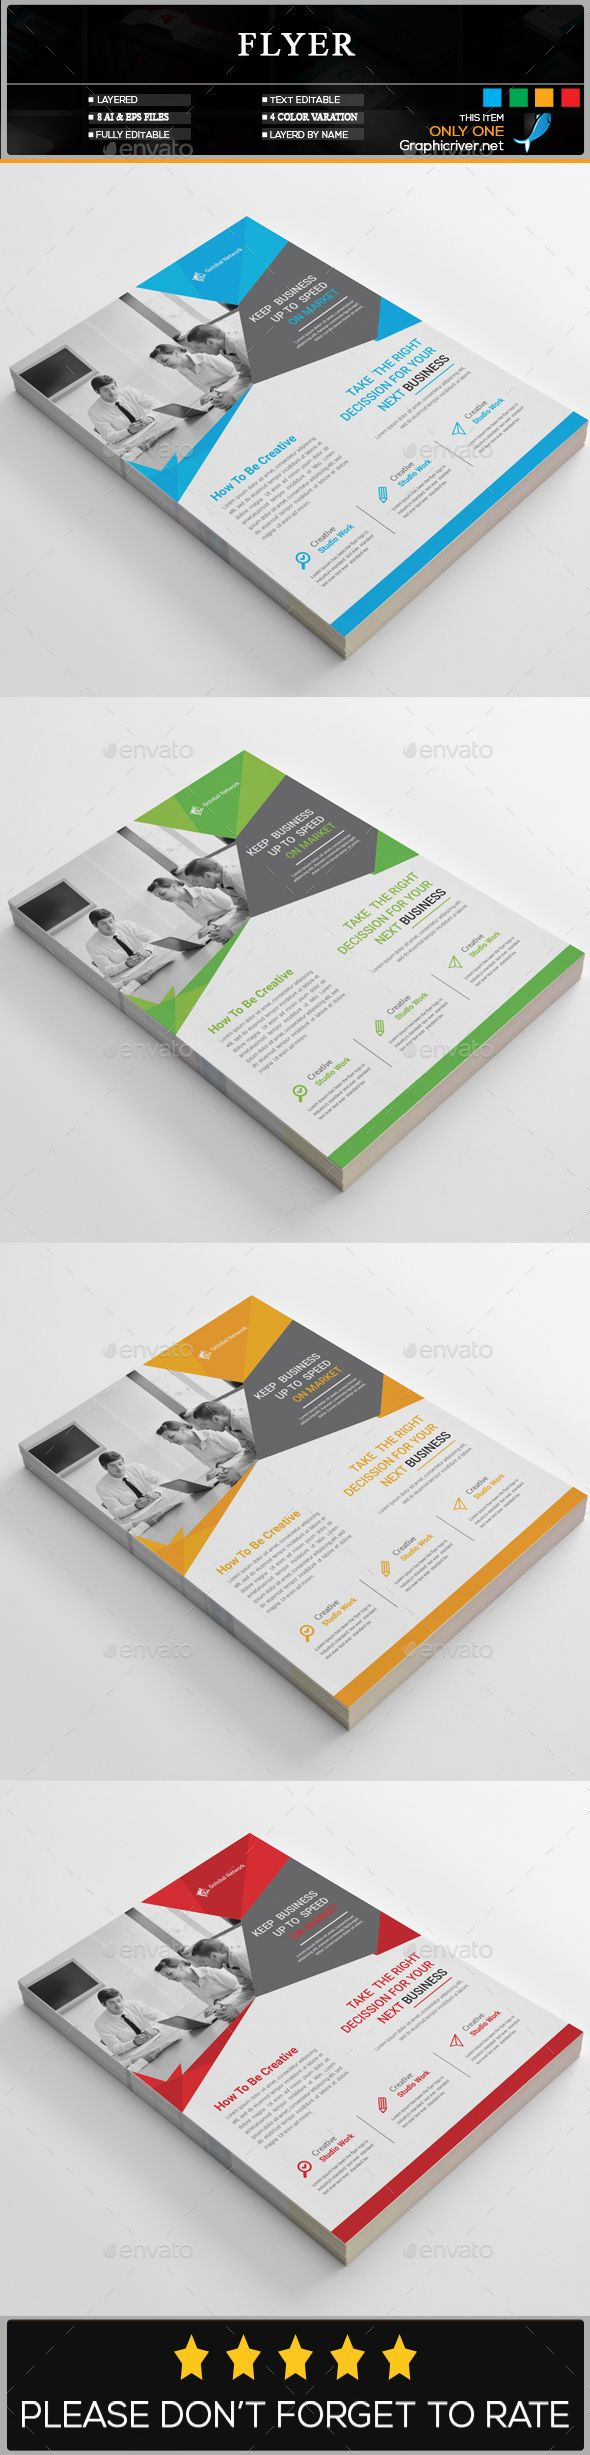 729 Best Business Flyer Images On Pinterest Business Flyers